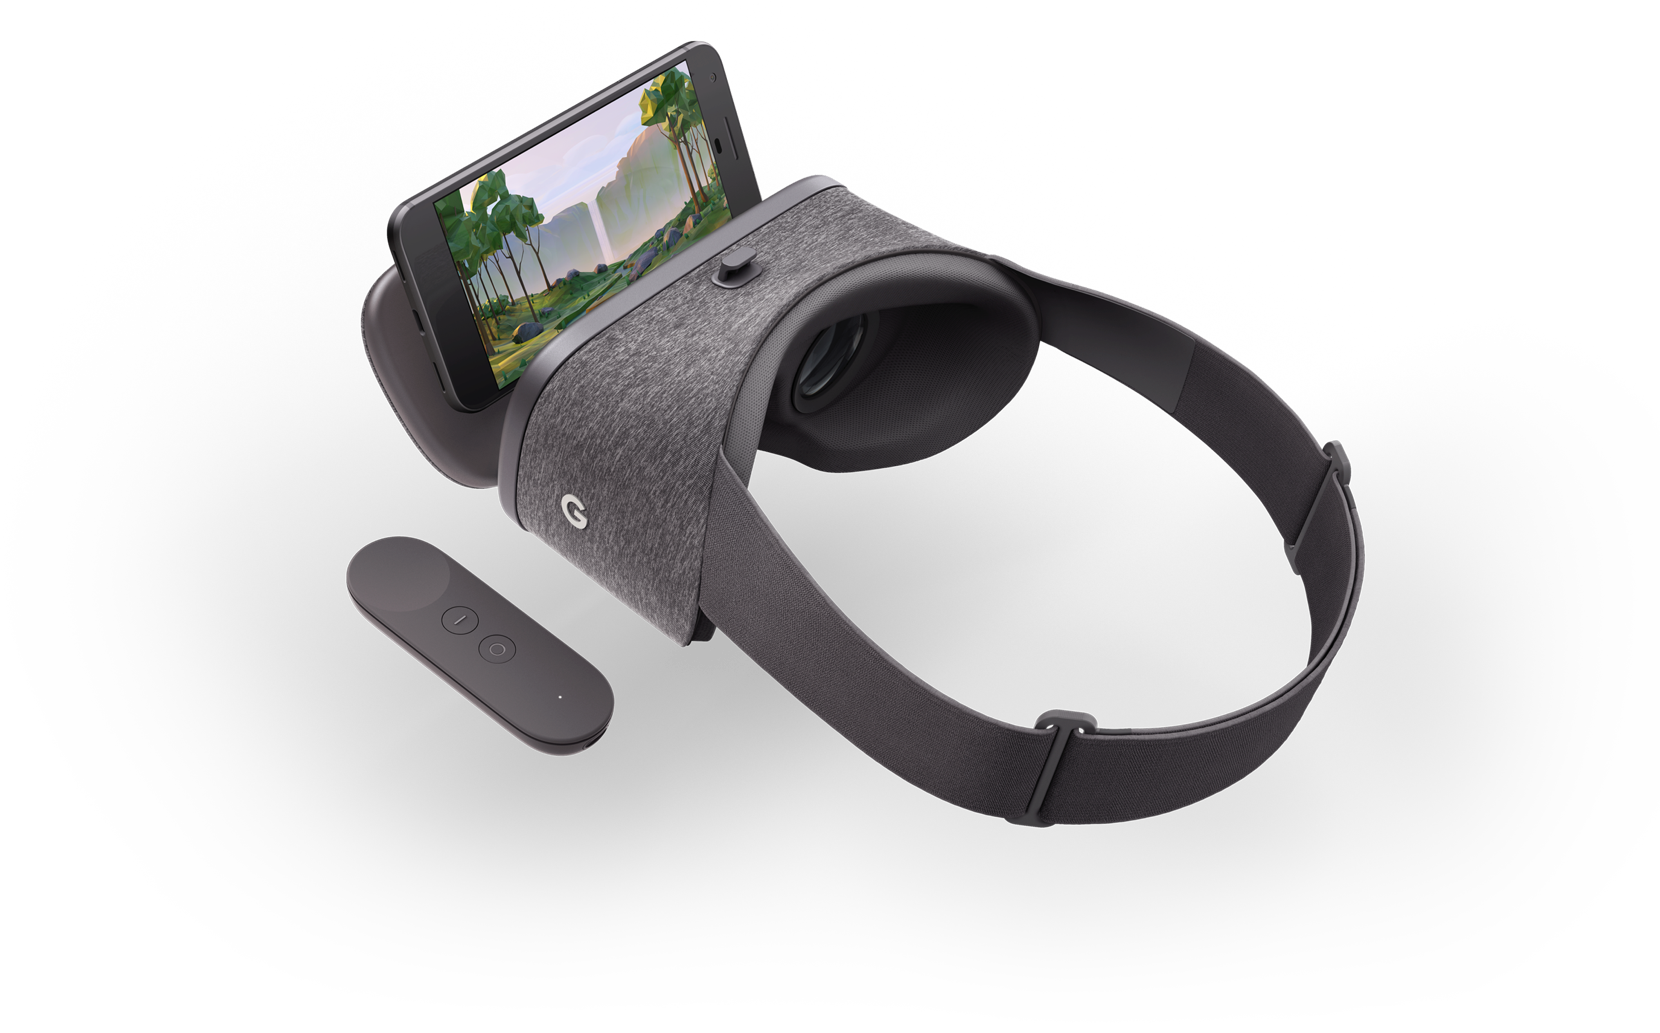 Google Acquired a Team From HTC and It Surprised No One daydream view